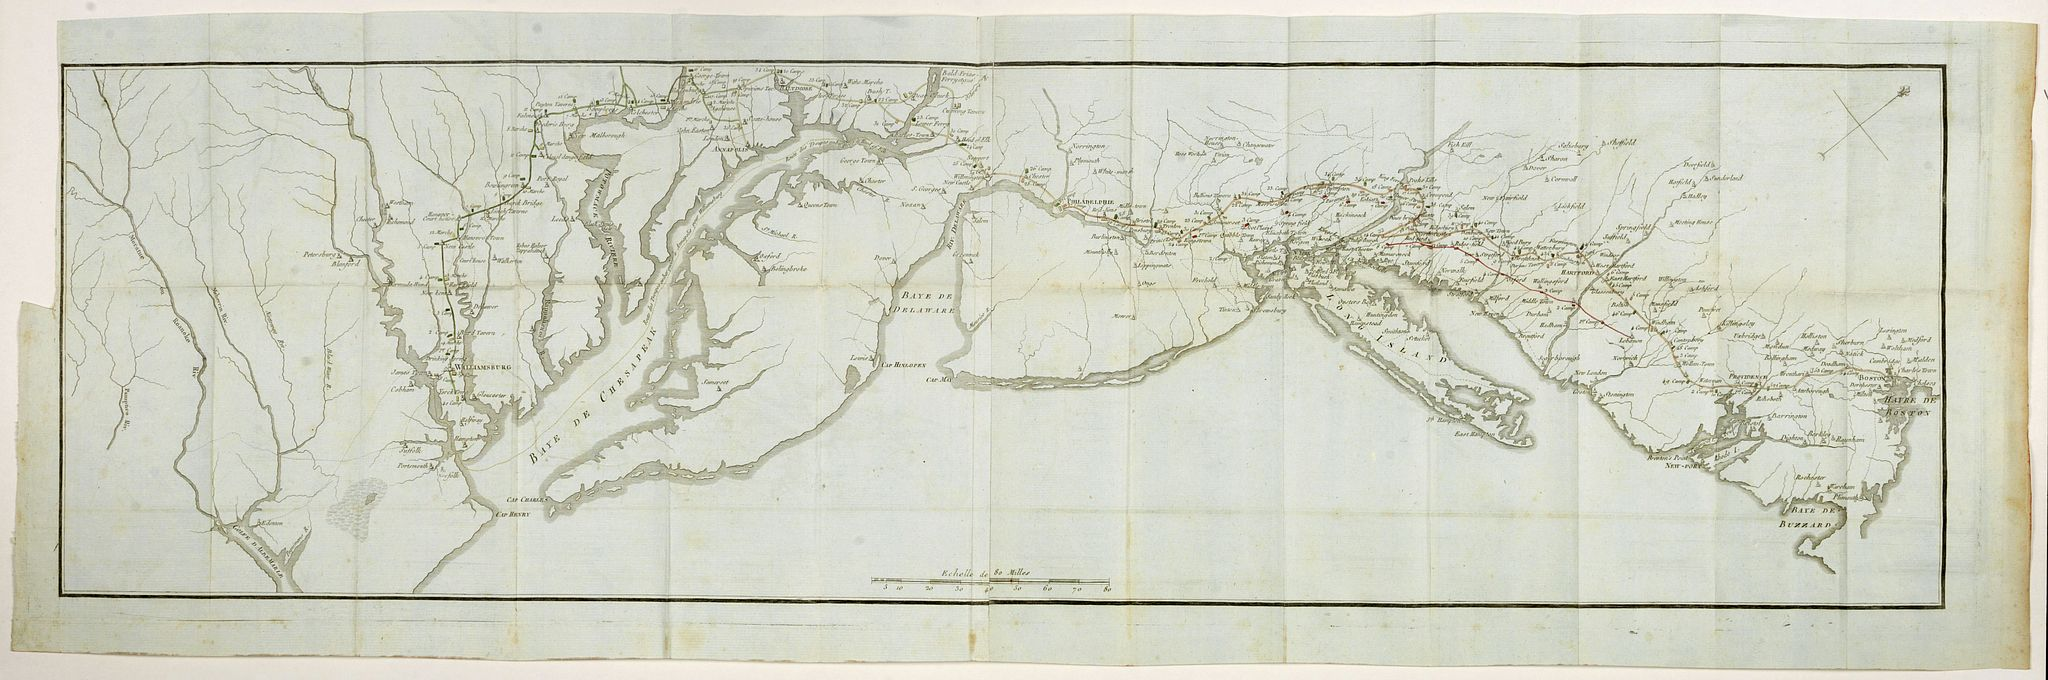 SOULES, F.,  [untitled map showing the route of the Continental Army from Boston to Yorktown], antique map, old maps